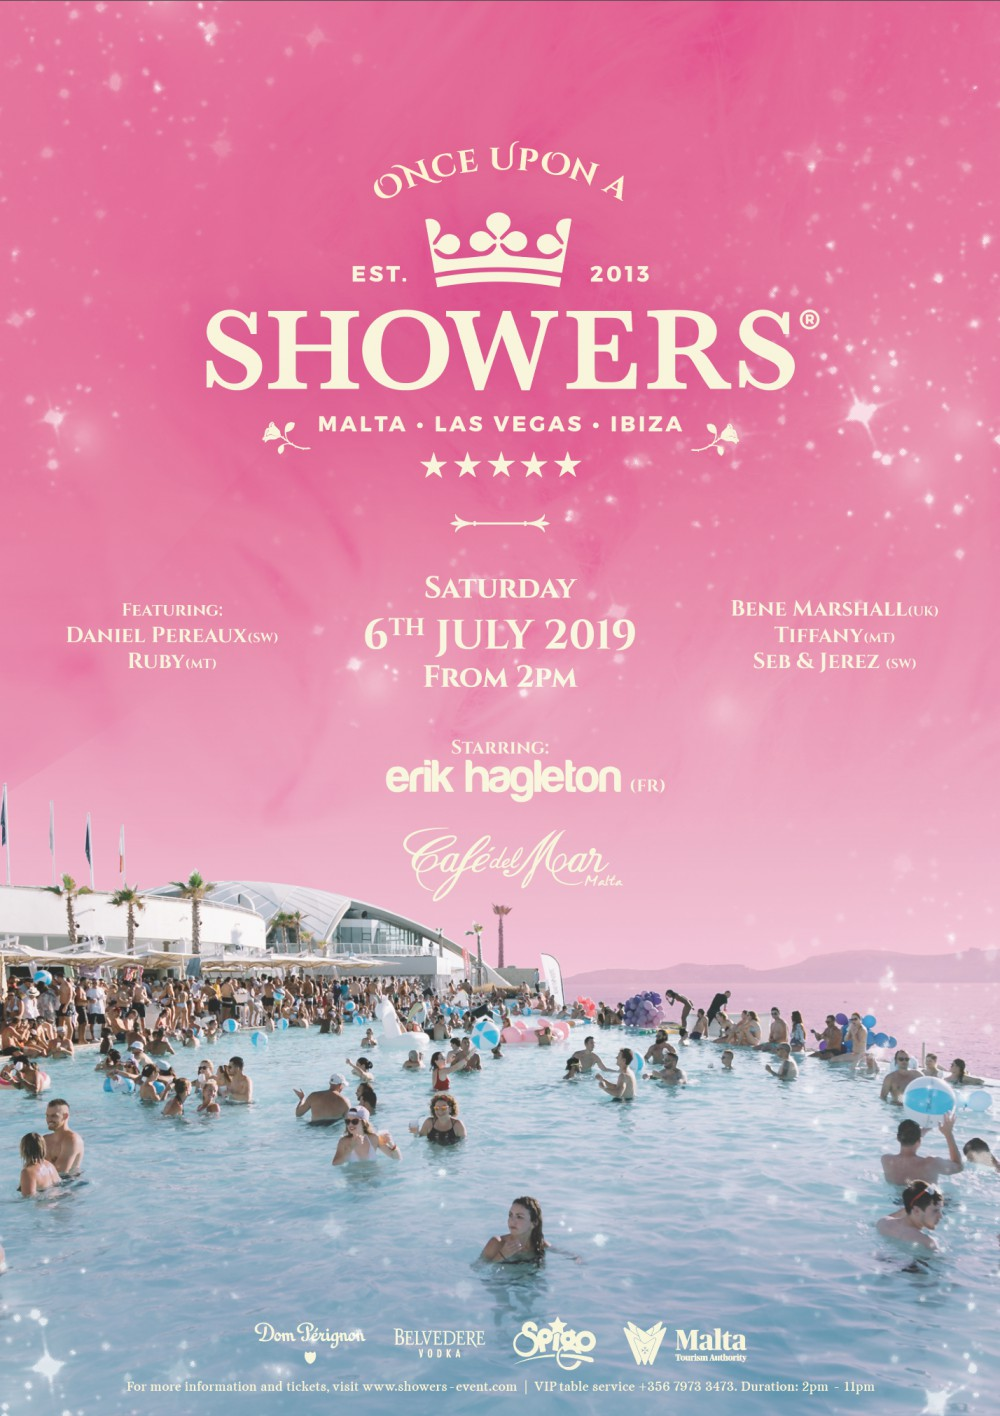 Once Upon A Showers flyer